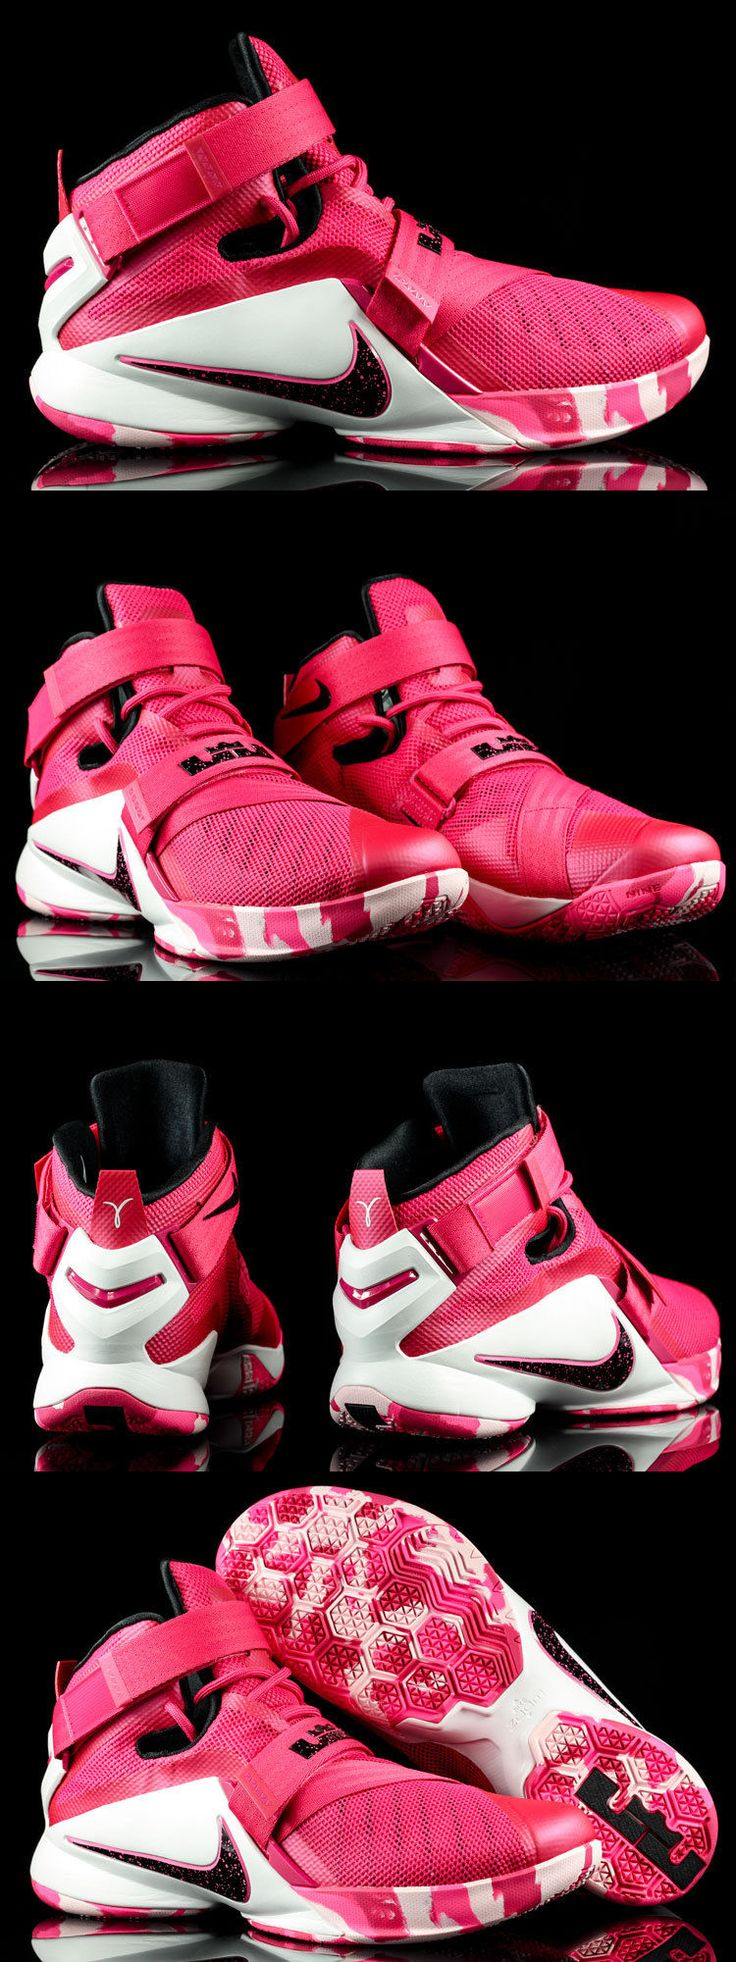 Basketball: Nike Lebron Soldier Ix Basketball Shoes Pink Cancer 749417-601 Mens Size 9.5 -> BUY IT NOW ONLY: $99.99 on eBay!